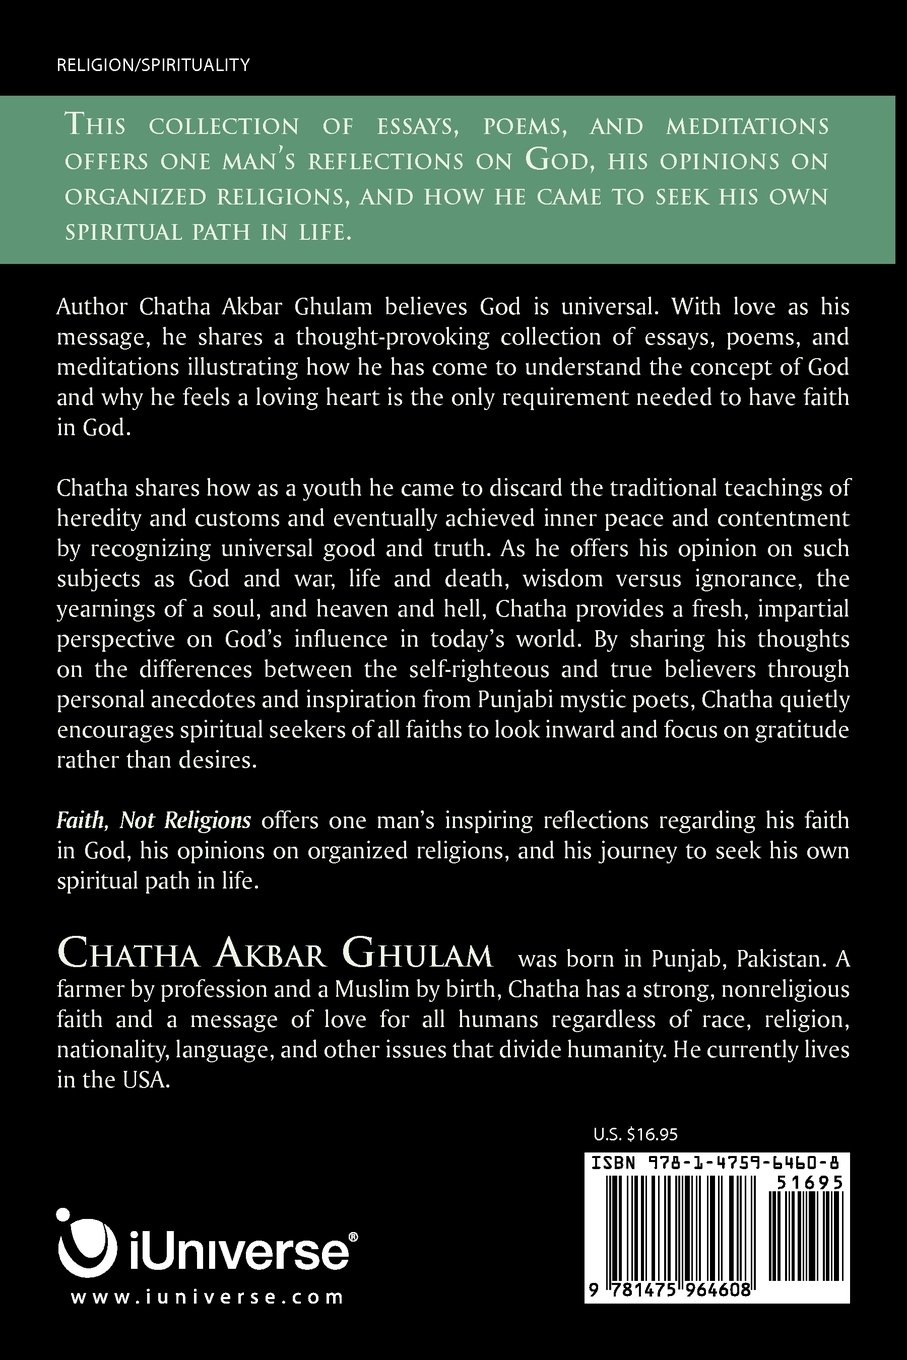 faith not religions a collection of essays chatha akbar ghulam faith not religions a collection of essays chatha akbar ghulam 9781475964608 com books